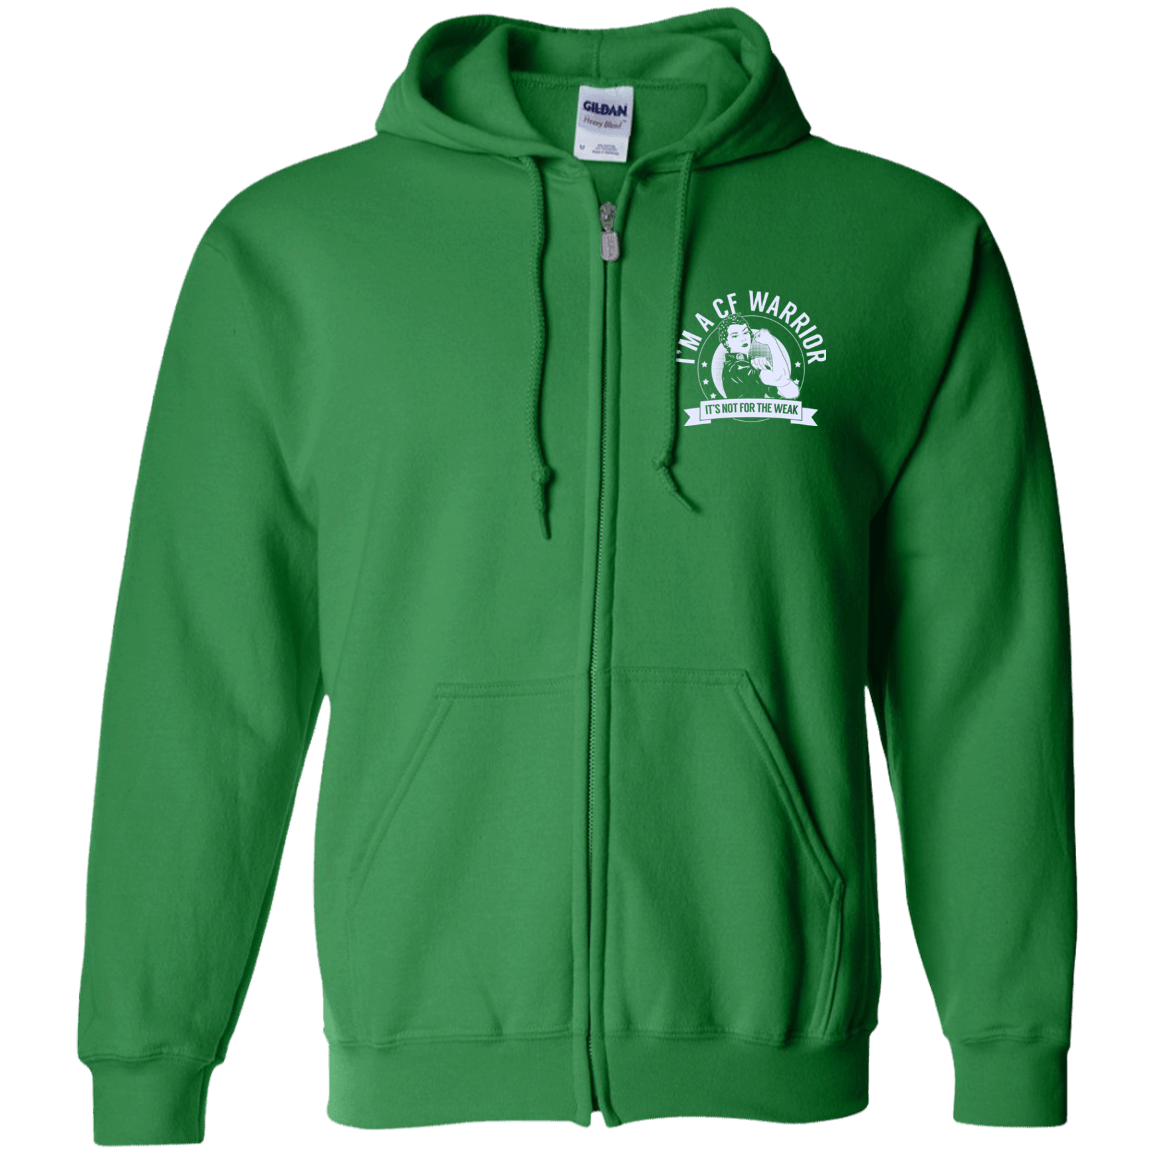 Sweatshirts - Cystic Fibrosis - CF Warrior NFTW Zip Up Hooded Sweatshirt